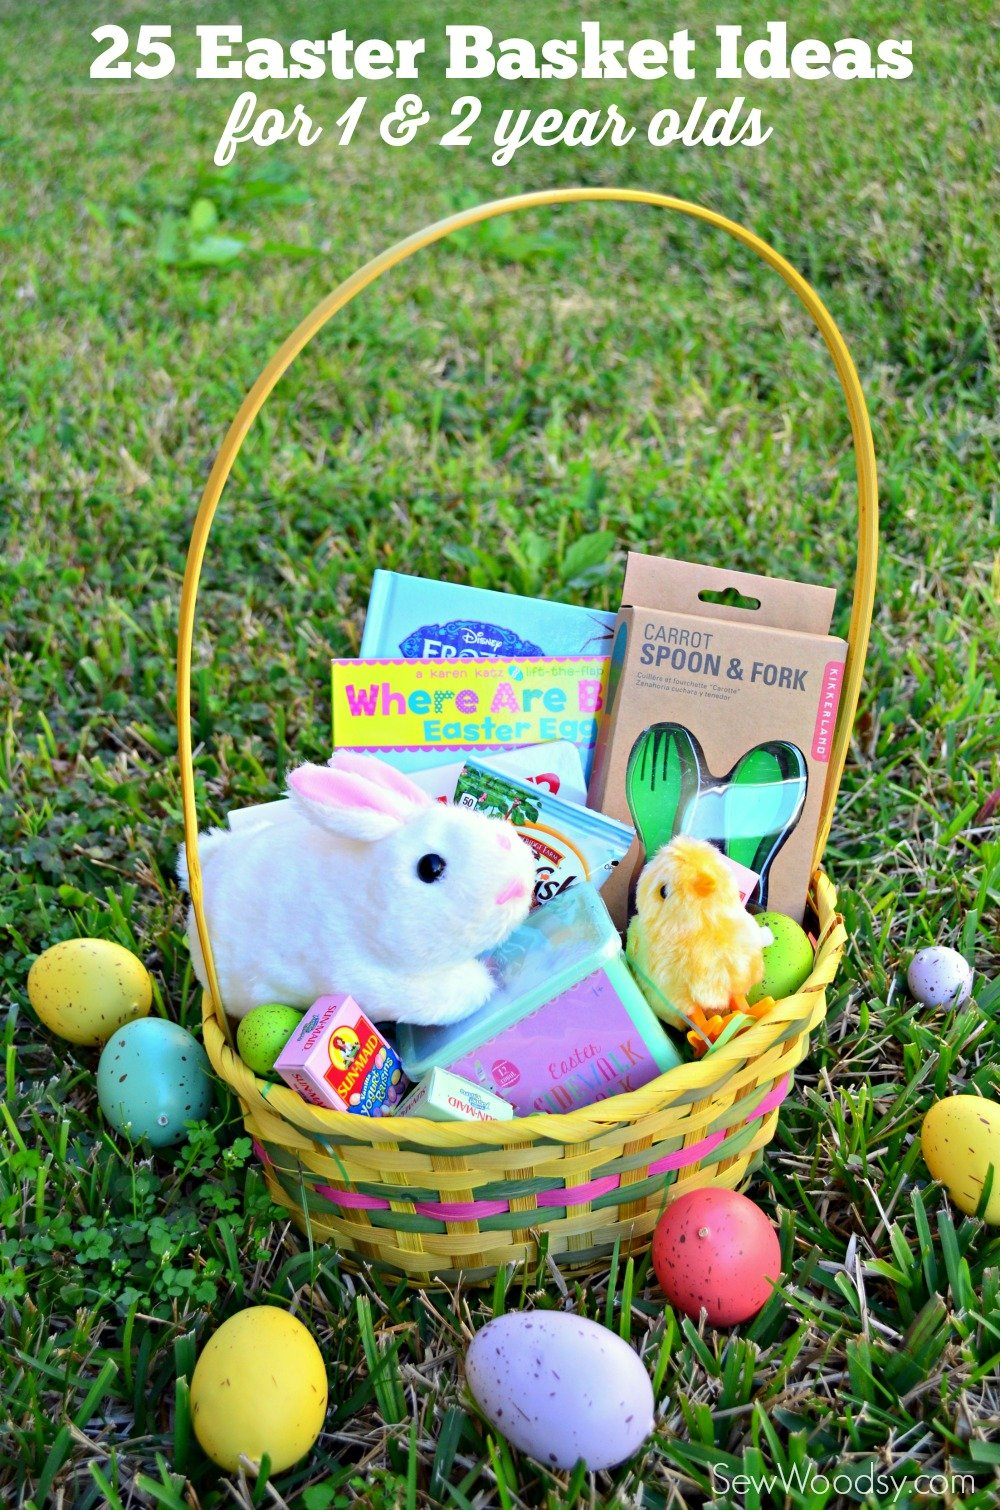 25 Easter Basket Ideas for 1 & 2 Year Olds